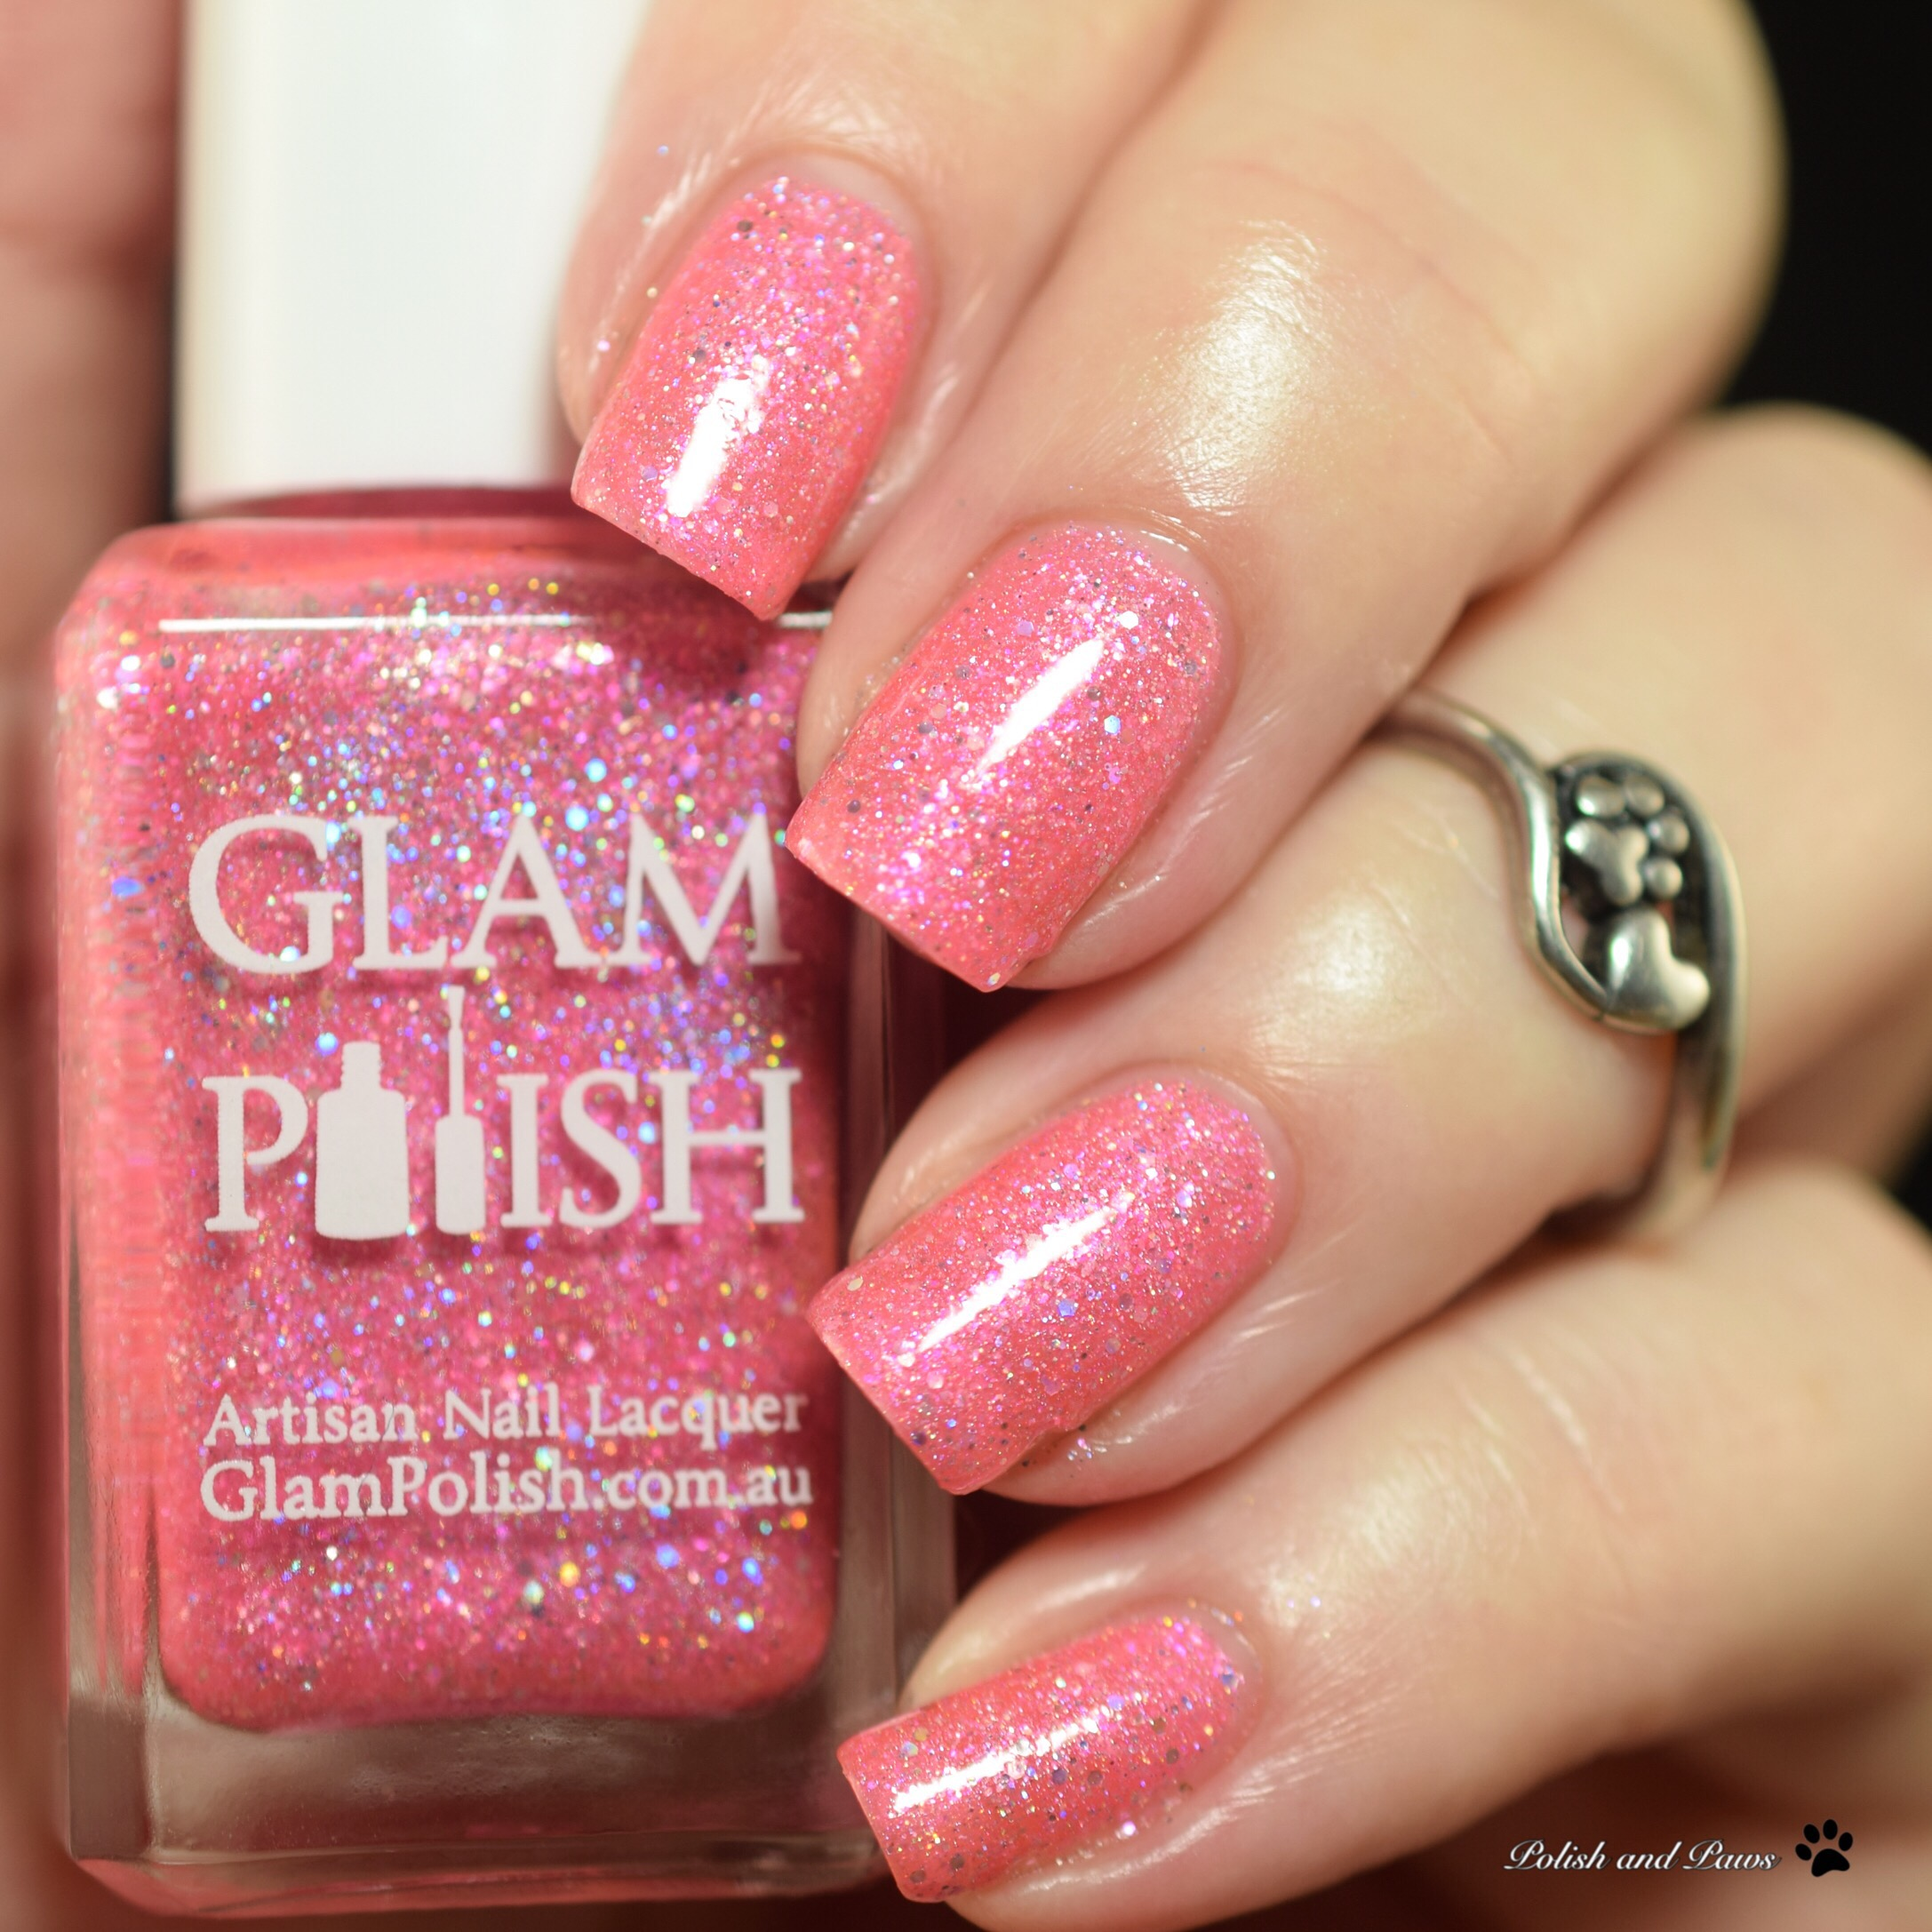 Glam Polish Hot as Shell